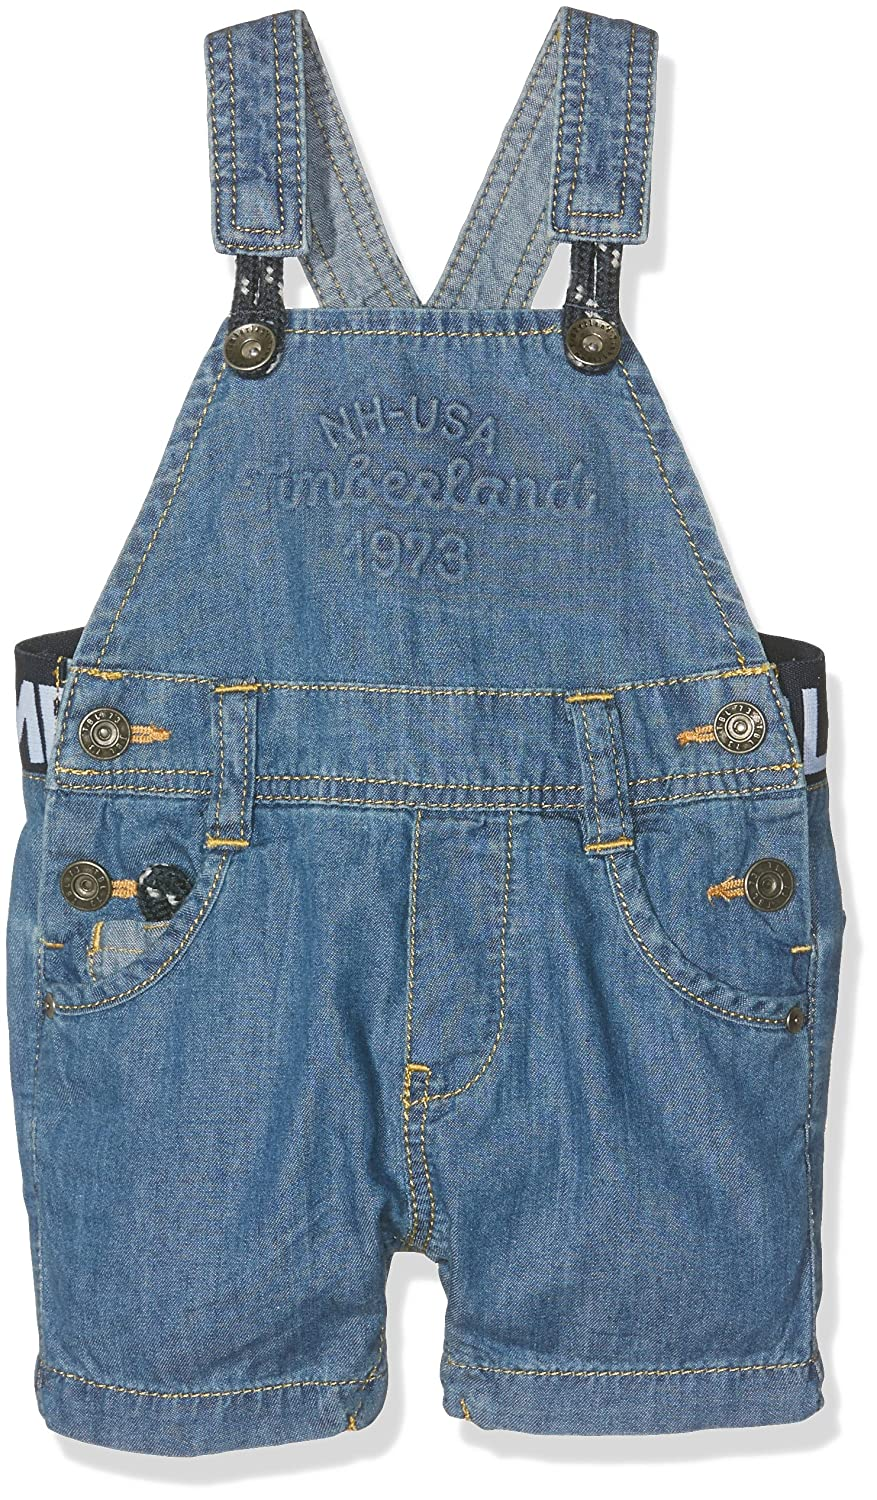 Timberland Baby Boys' Dungarees Blue (Bleach) 3-6 Months T94659